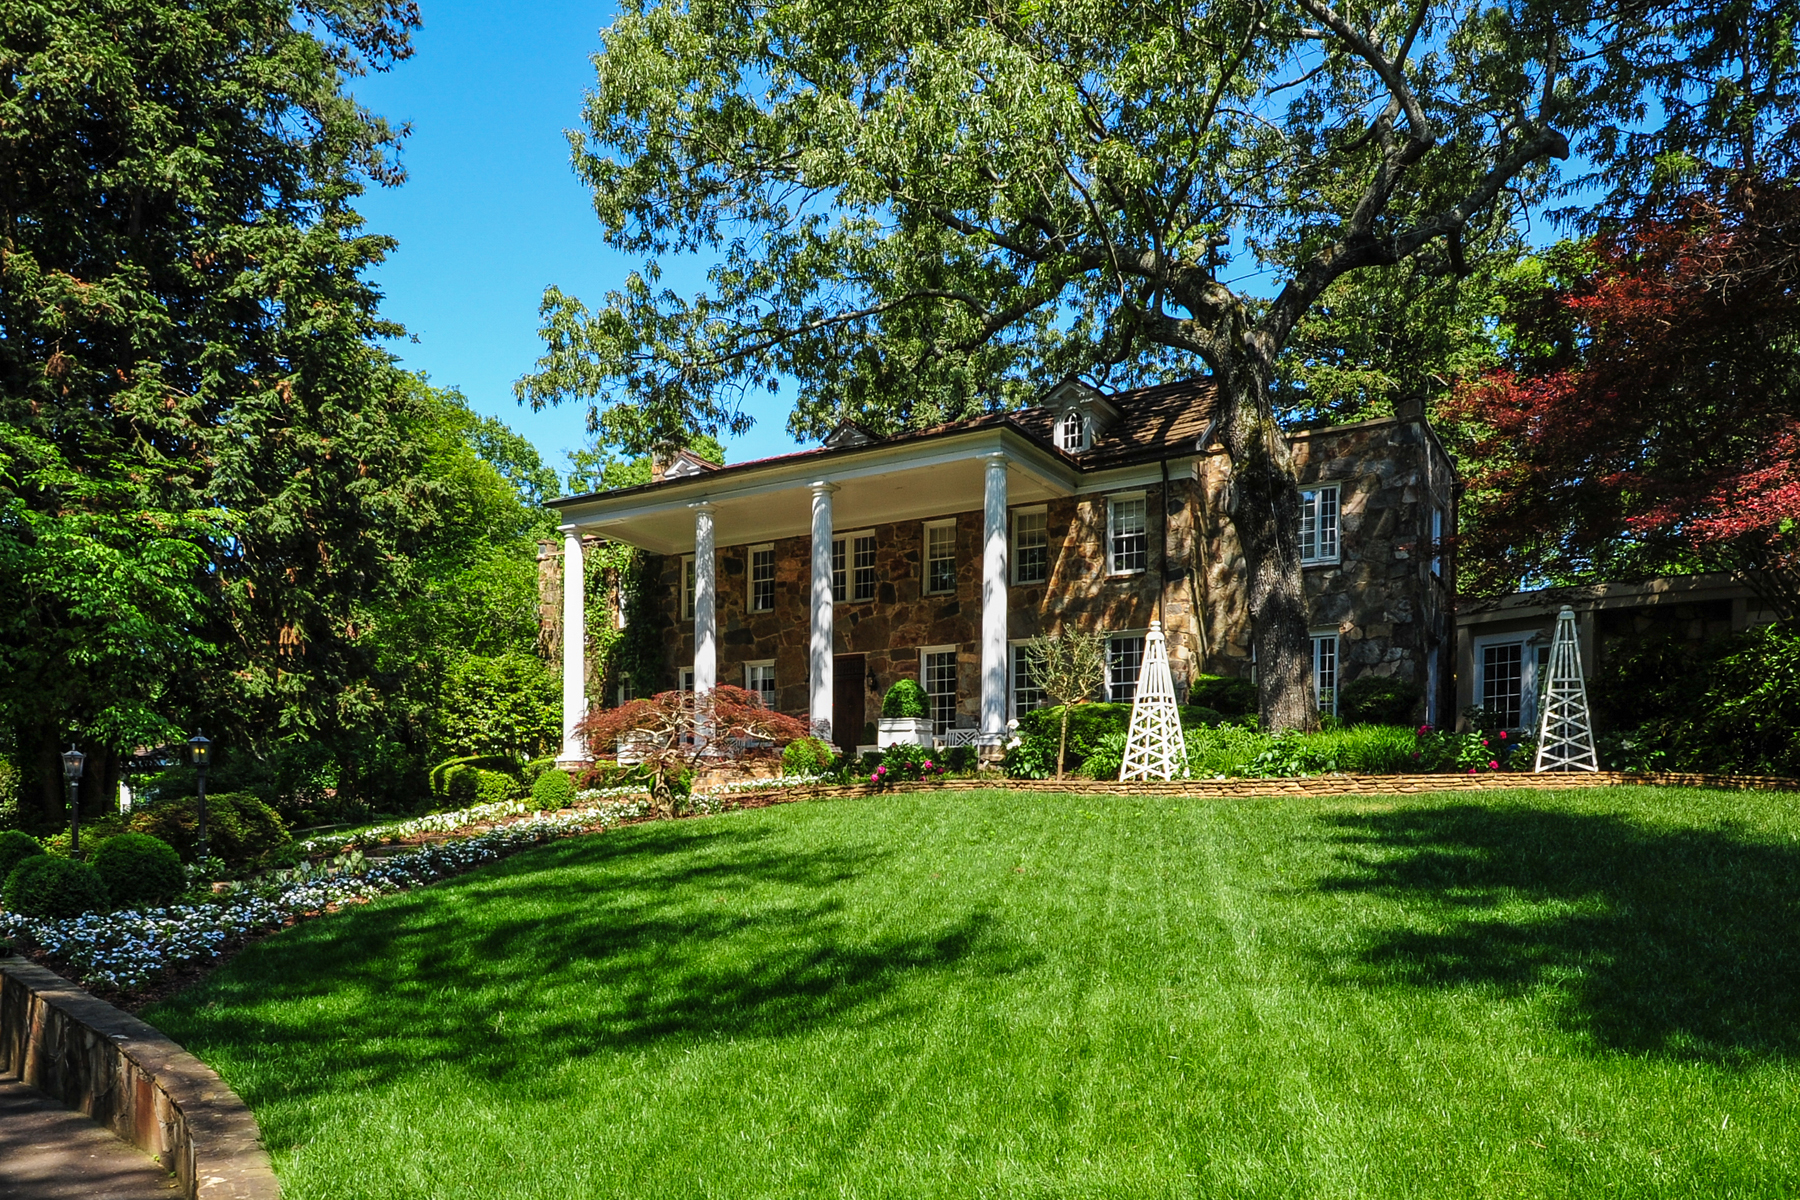 Villa per Vendita alle ore Custom Restoration, Award Winning Gardens 1295 Heards Ferry Road NW Sandy Springs, Georgia, 30328 Stati Uniti